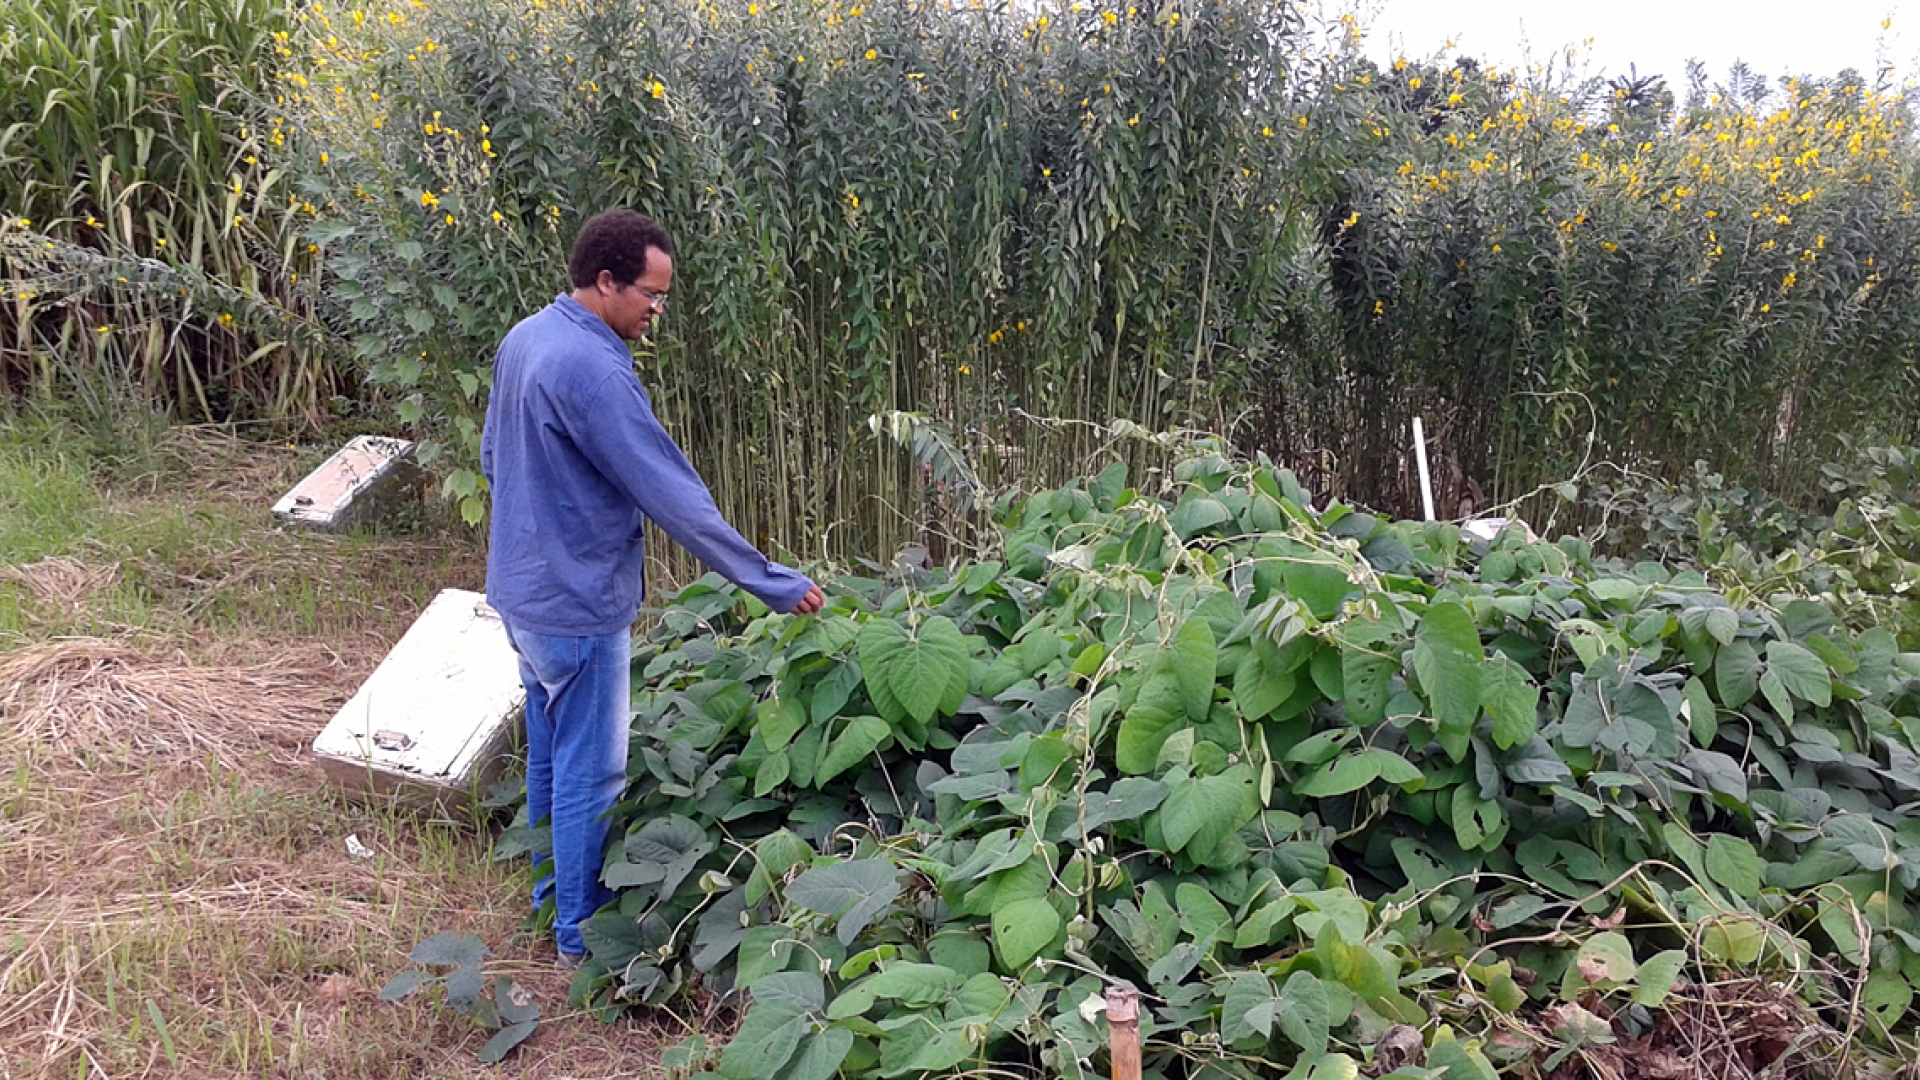 Farmers in Brazil Use Legumes to Reduce Costs, Greenhouse